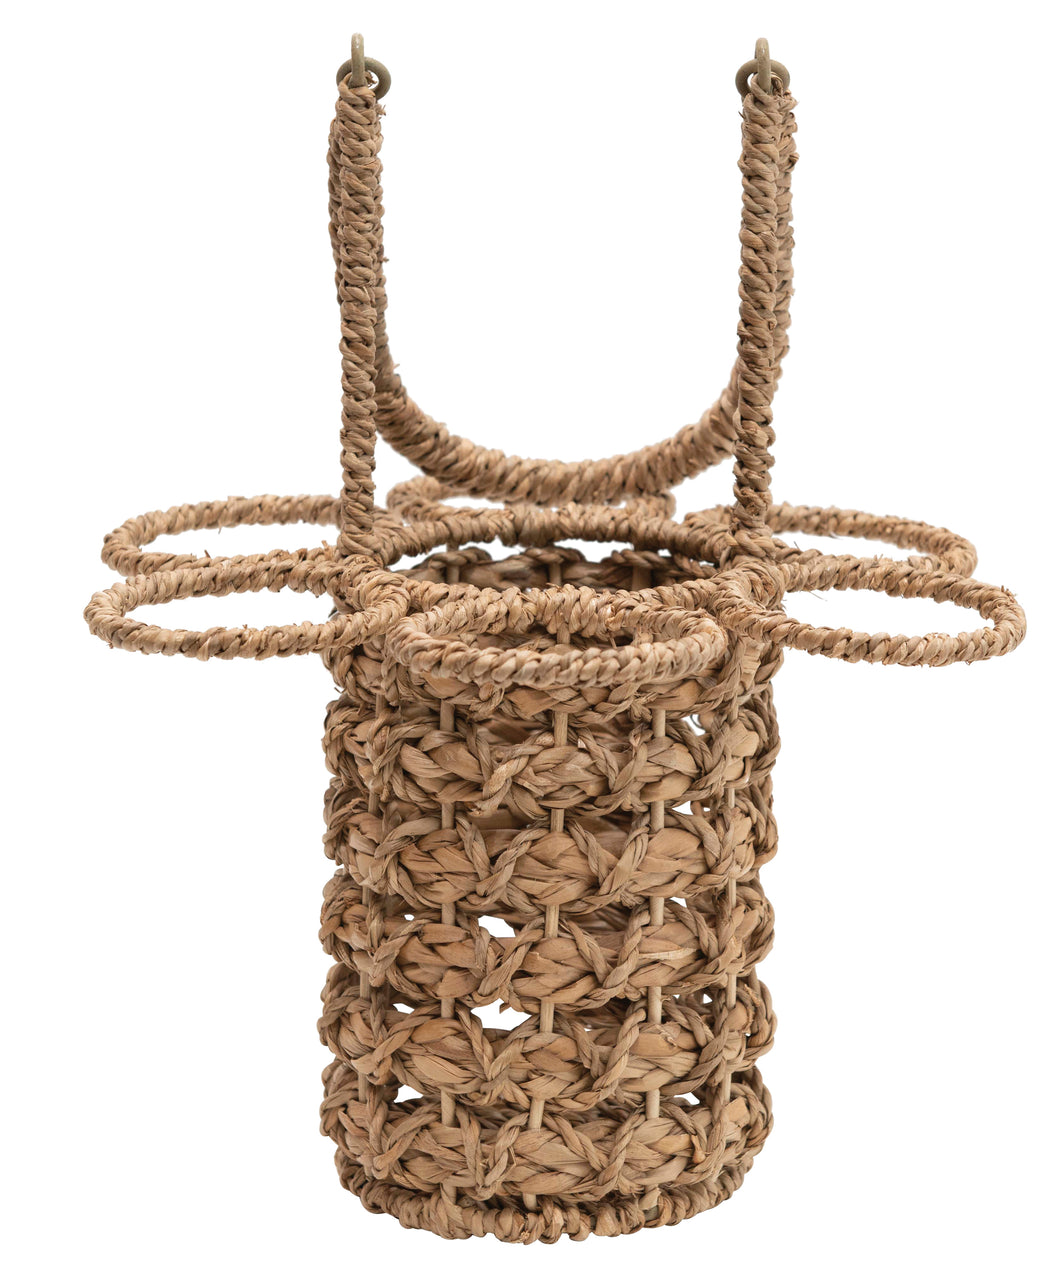 Care Free Woven Seagrass Wine Bottle & Glass Holder